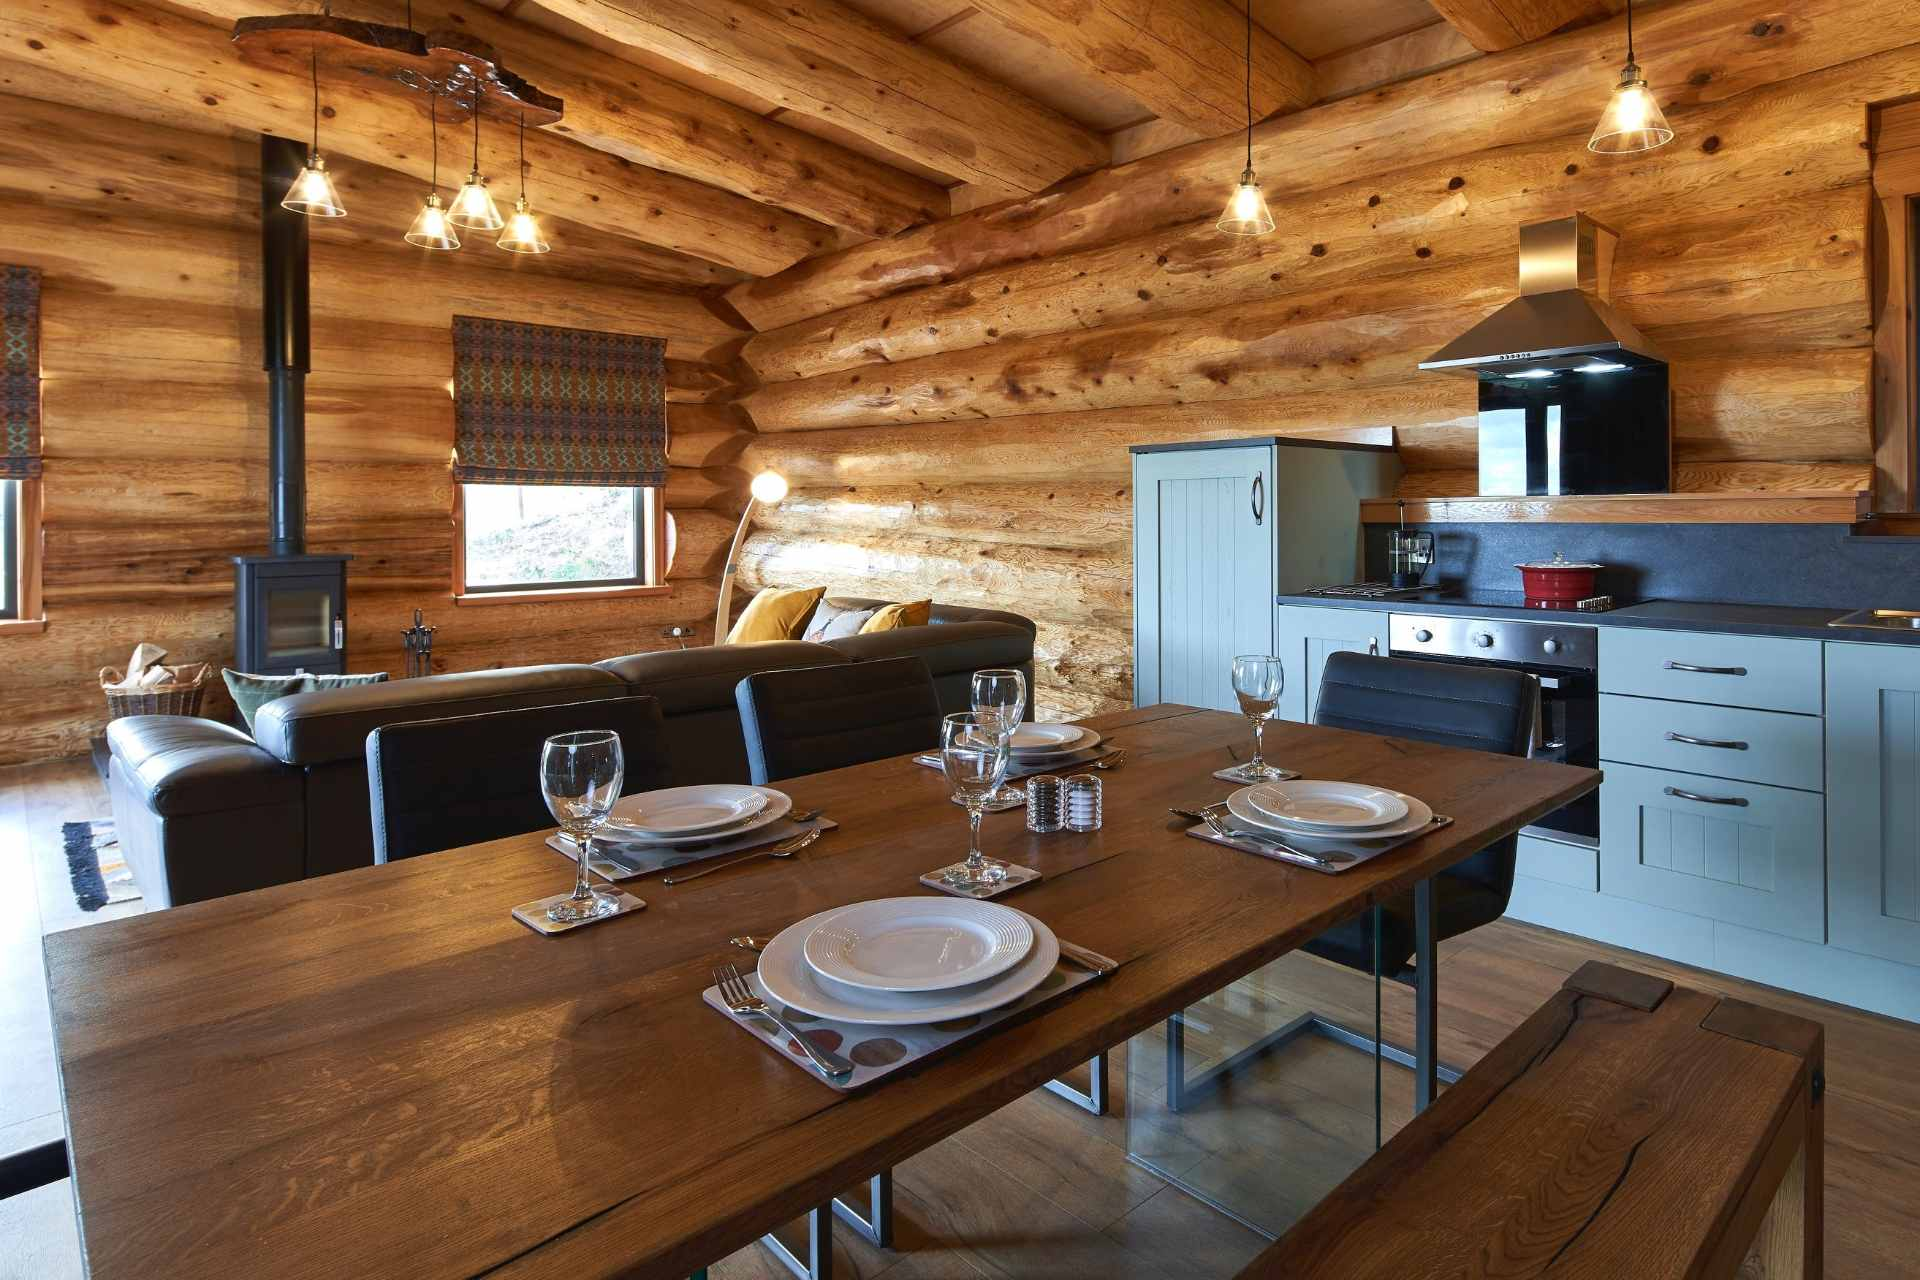 kitchen-dining-table-sofas-and-logburner-in-aurora-salix-cabin